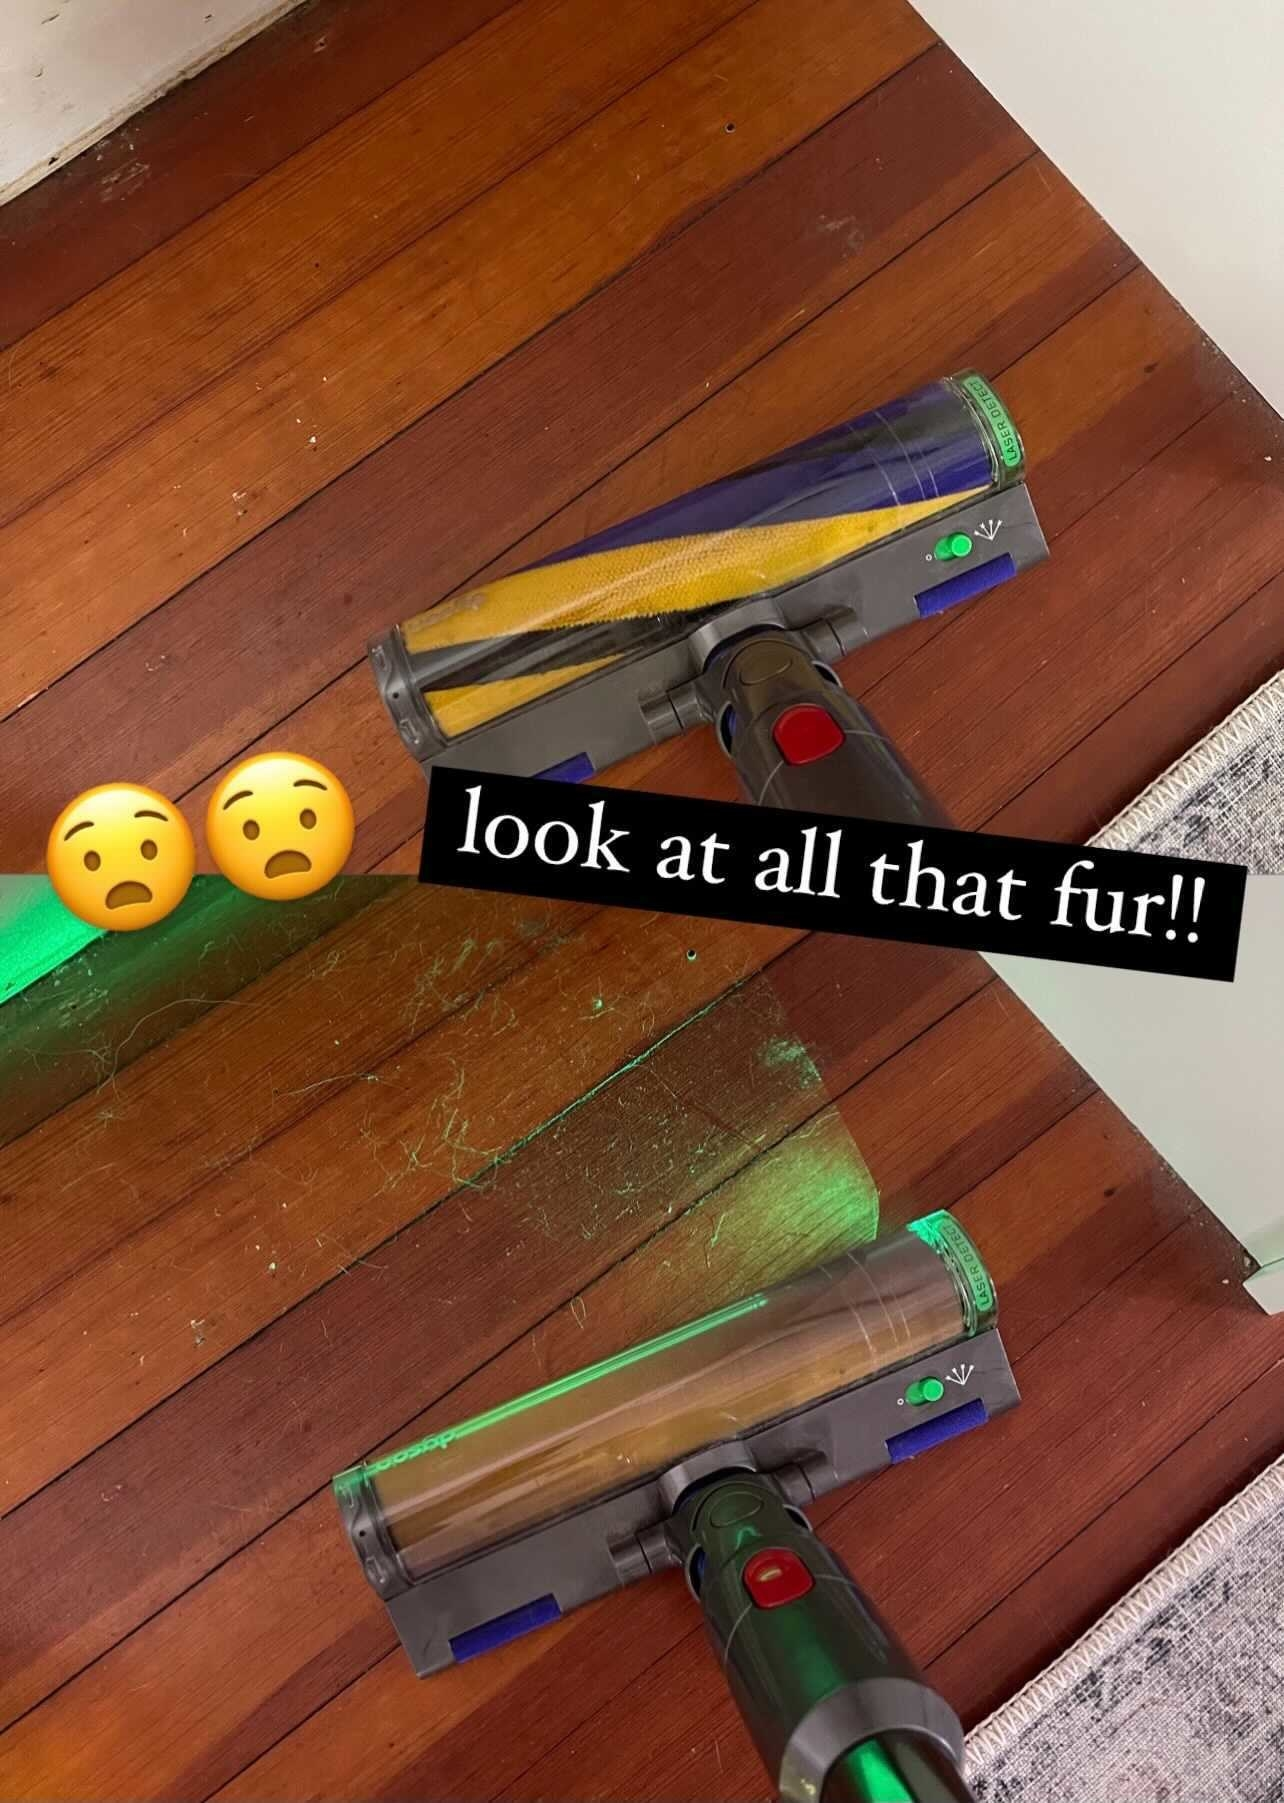 """The Dyson Detect vacuum off and on in a comparison photo to show all the hidden fur, text overlay says """"look at all this fur"""""""